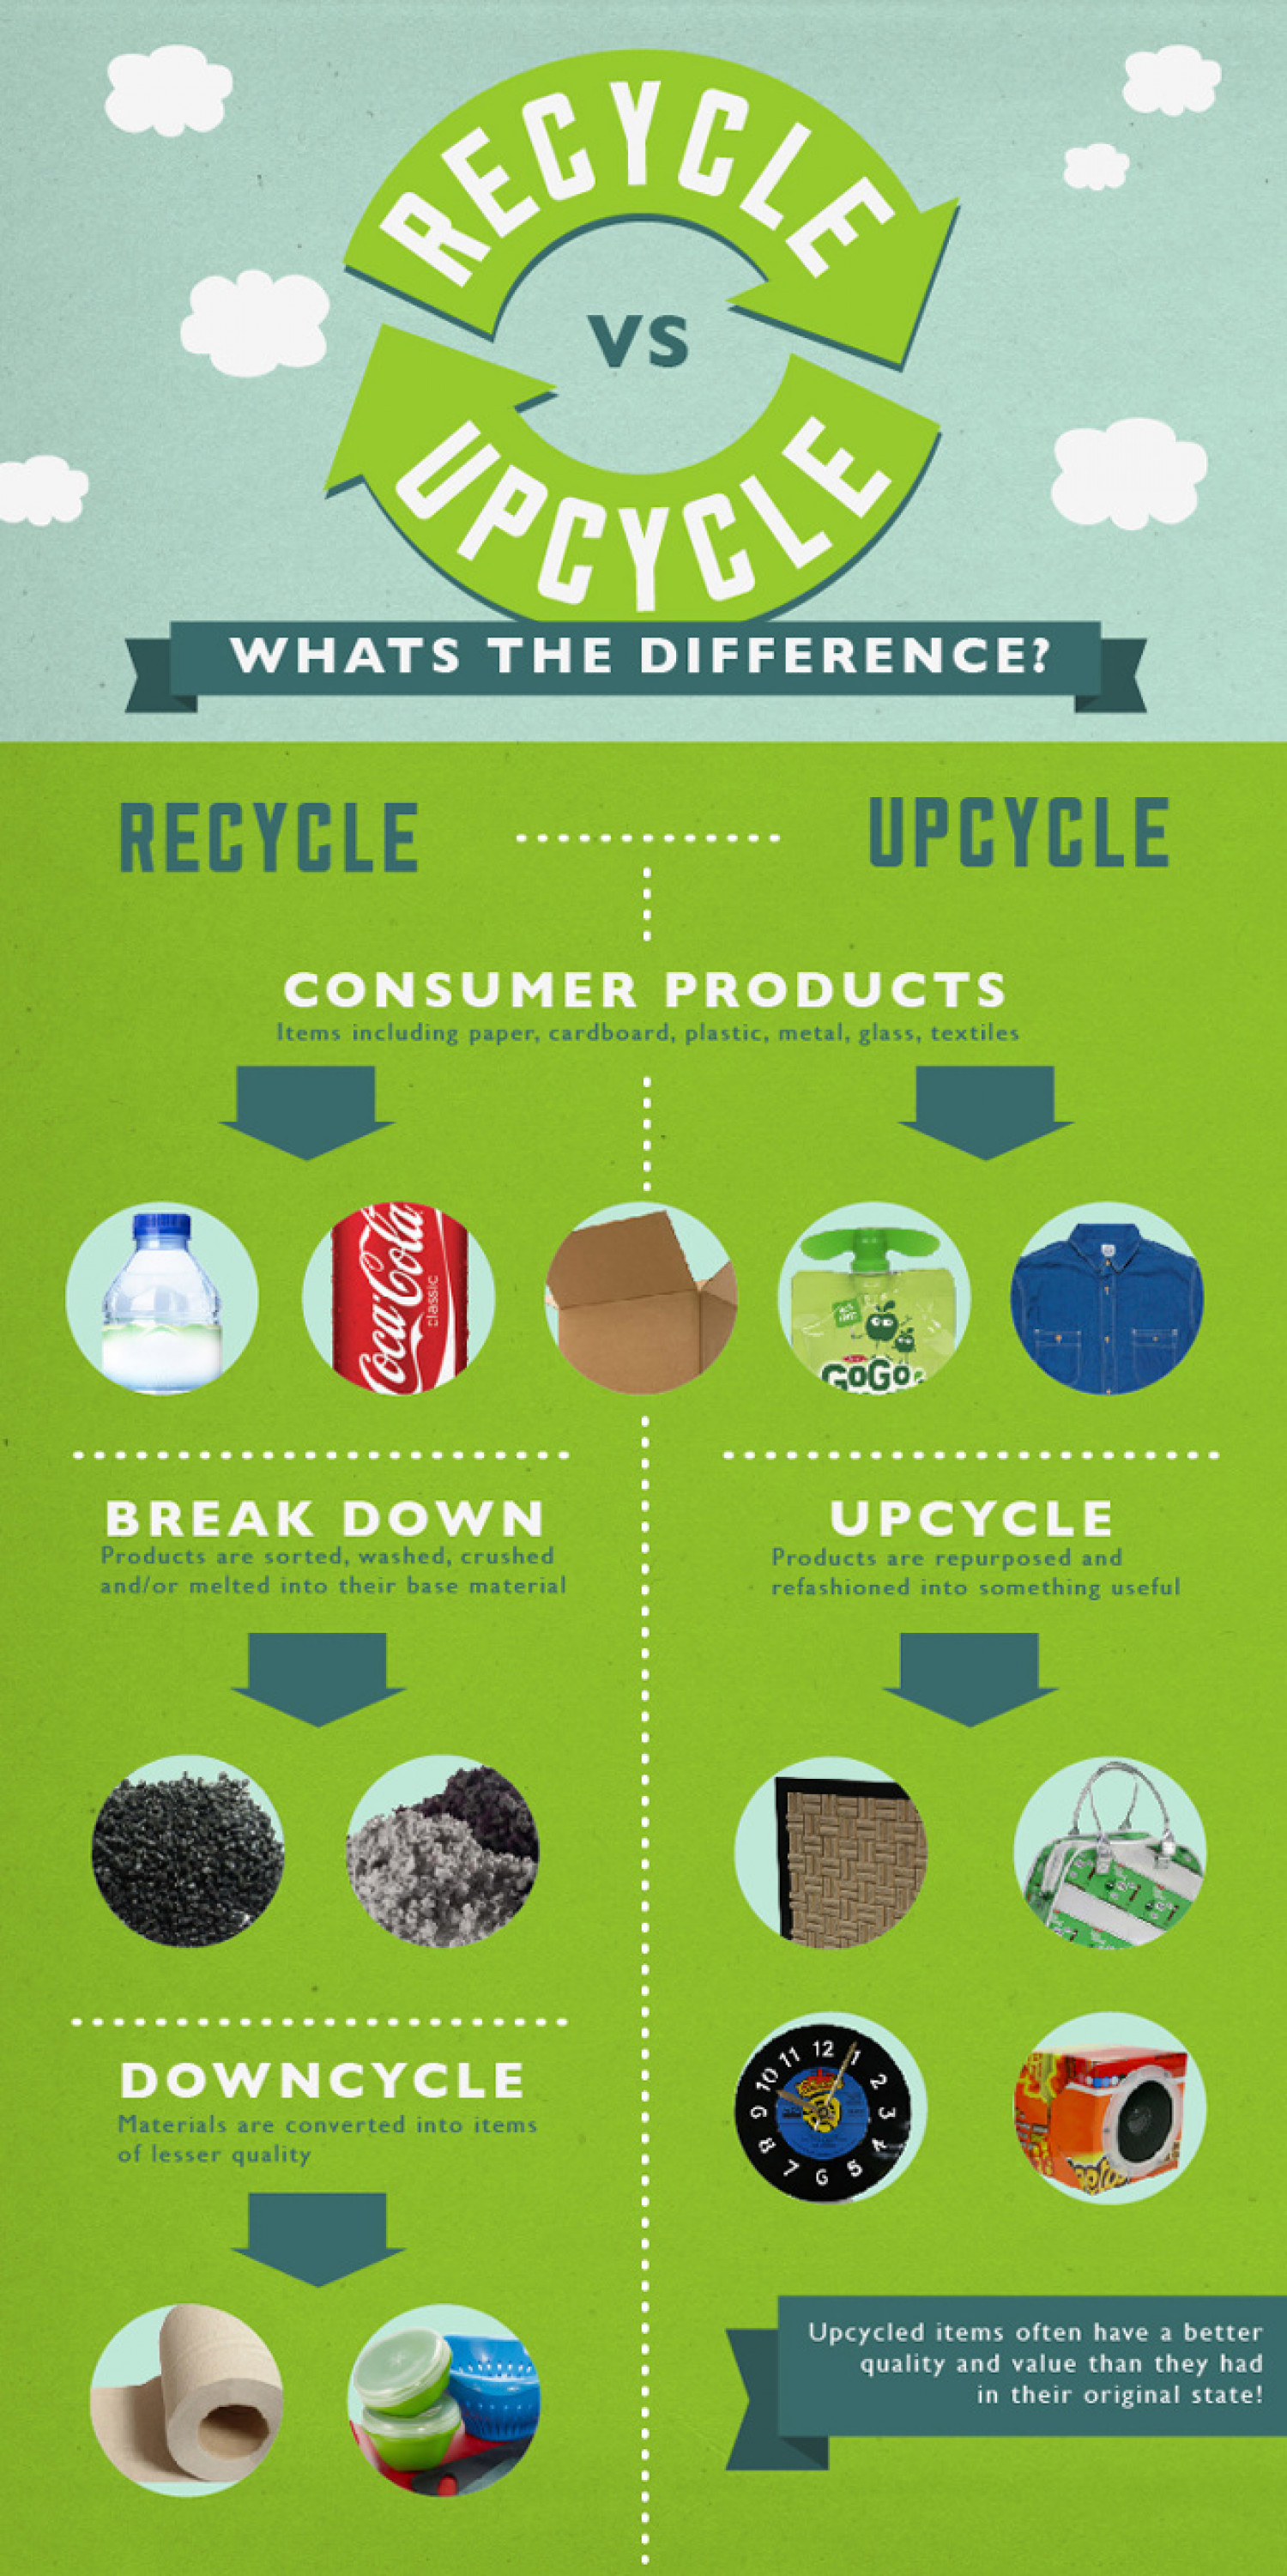 recycle vs upcycle